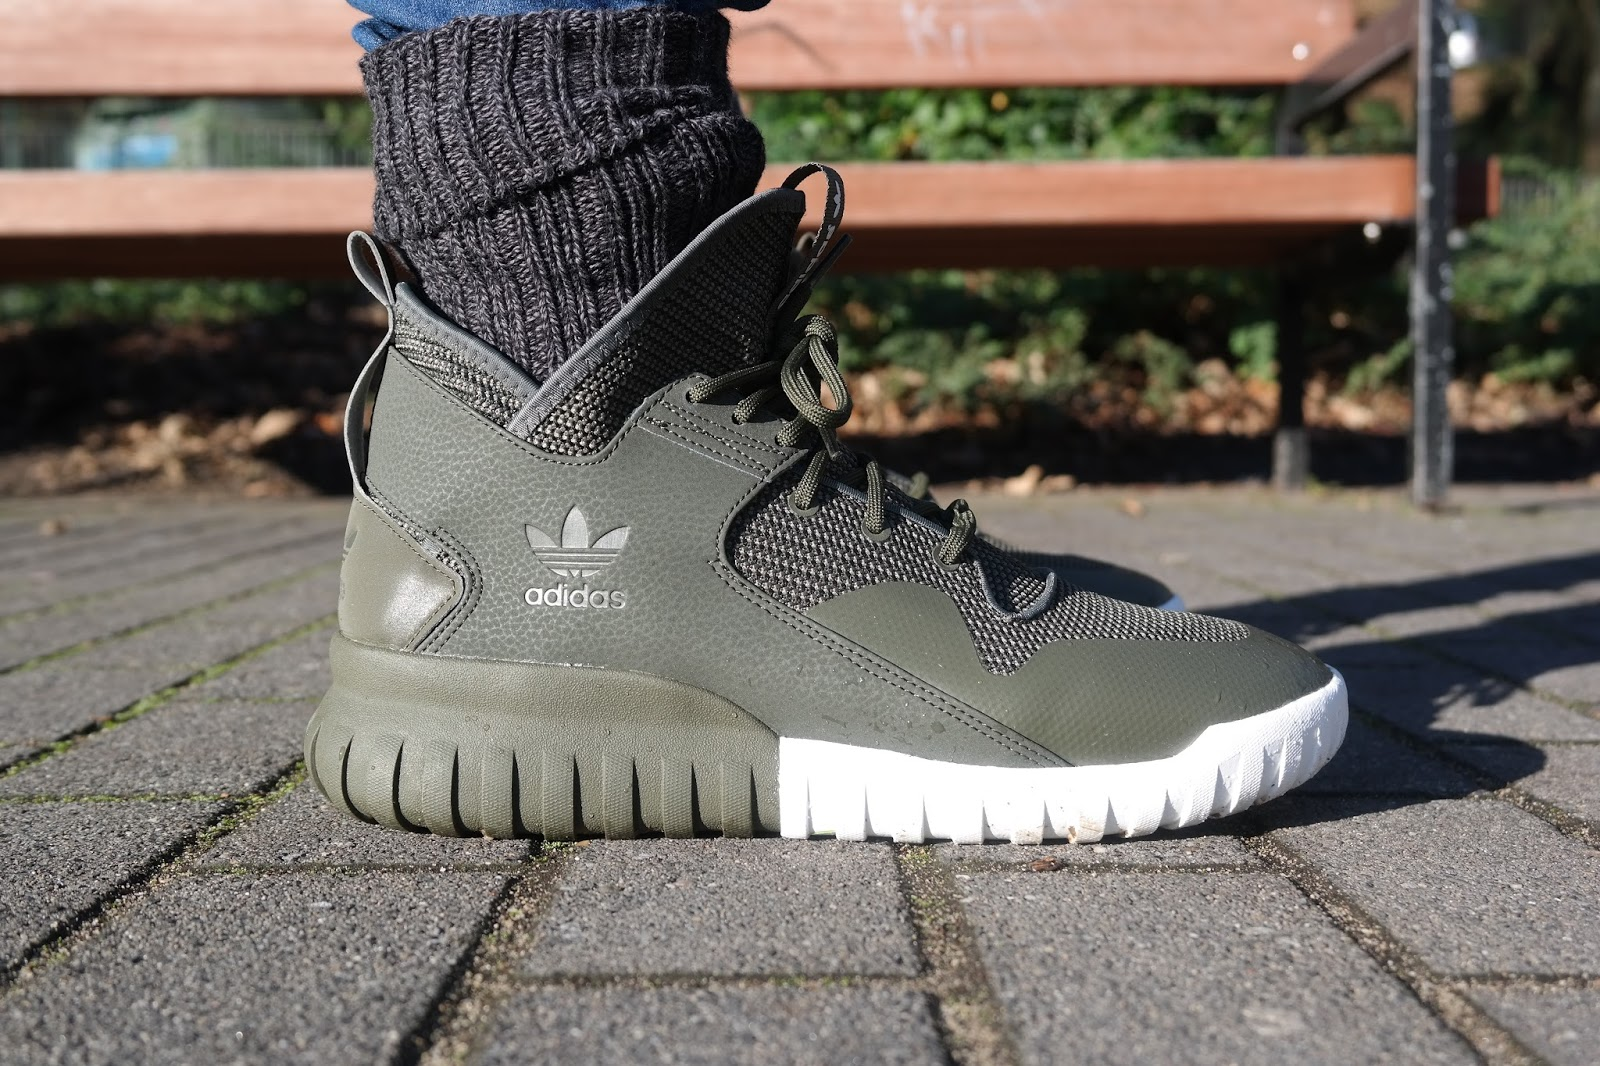 adidas Tubular X 2.0 Primeknit Upcoming Colorways